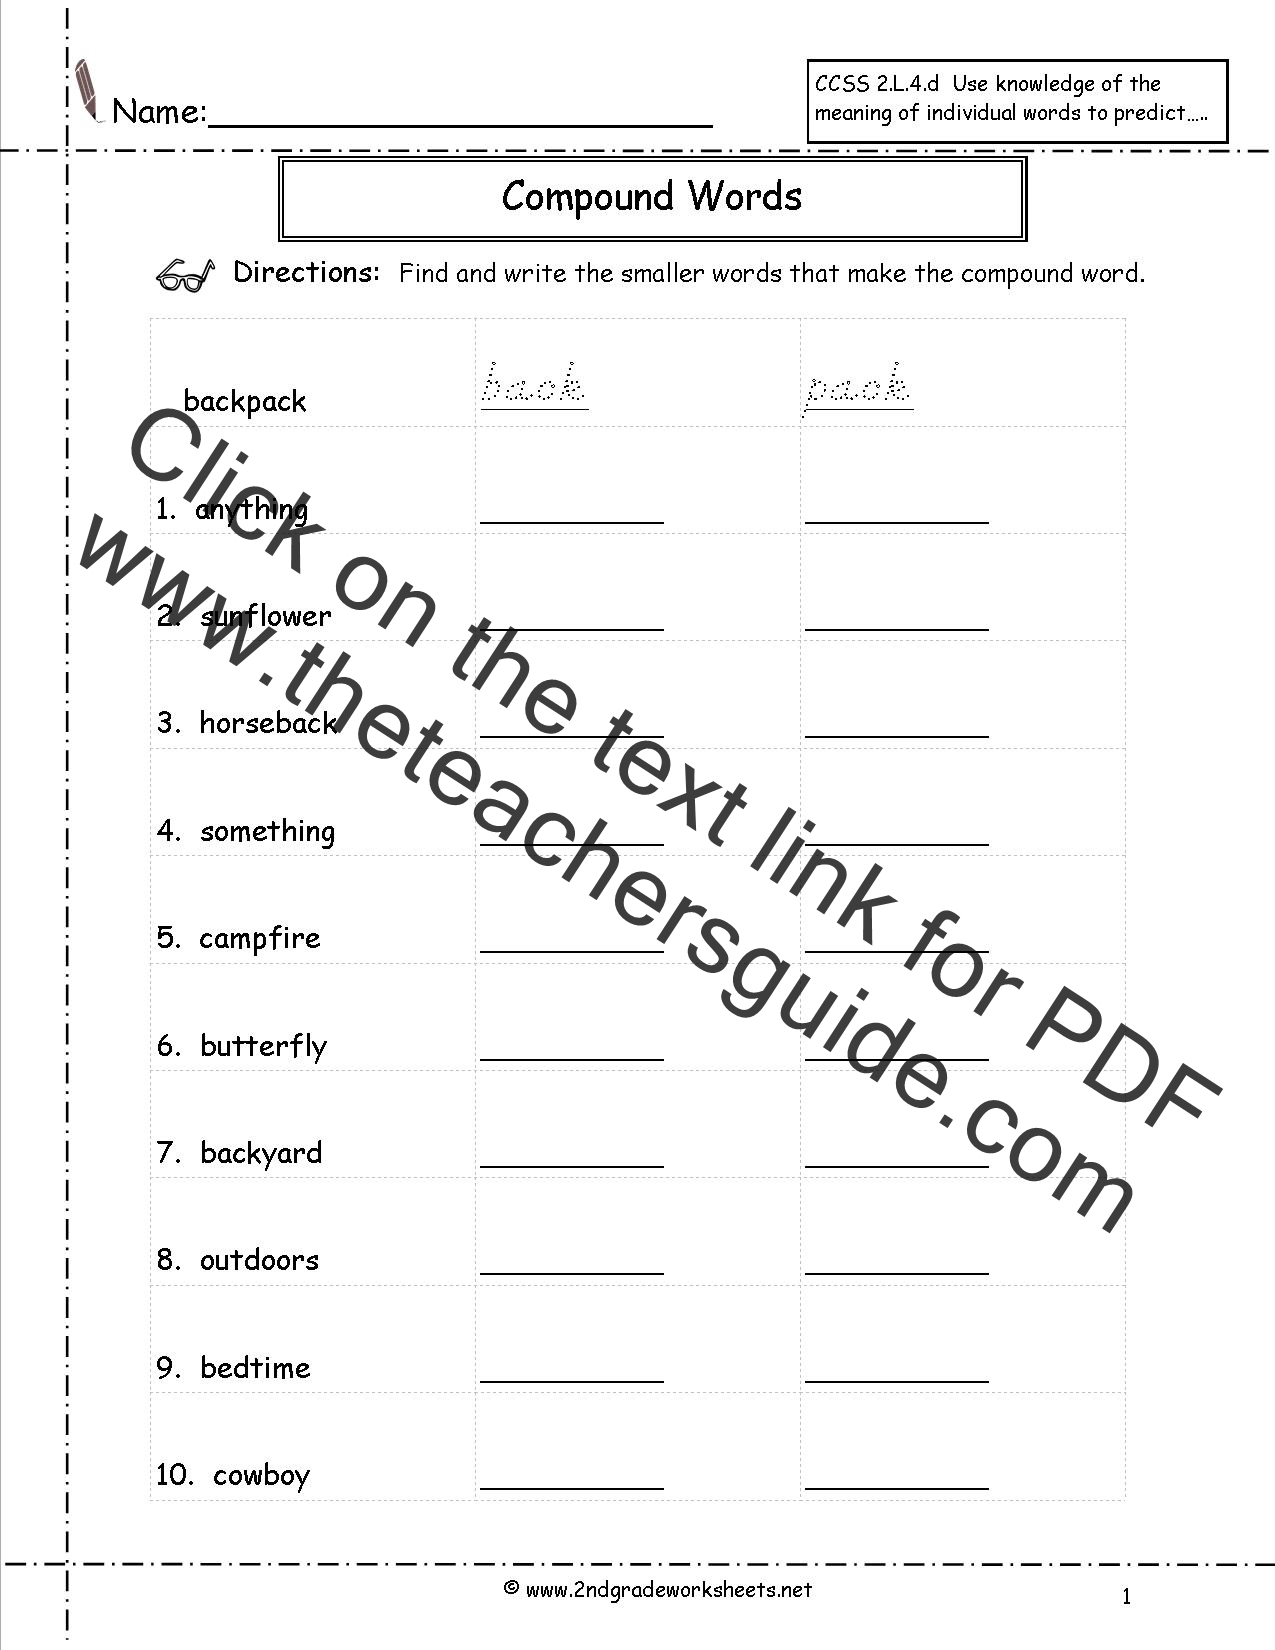 Printables Second Grade Printable Worksheets free languagegrammar worksheets and printouts compound words worksheets